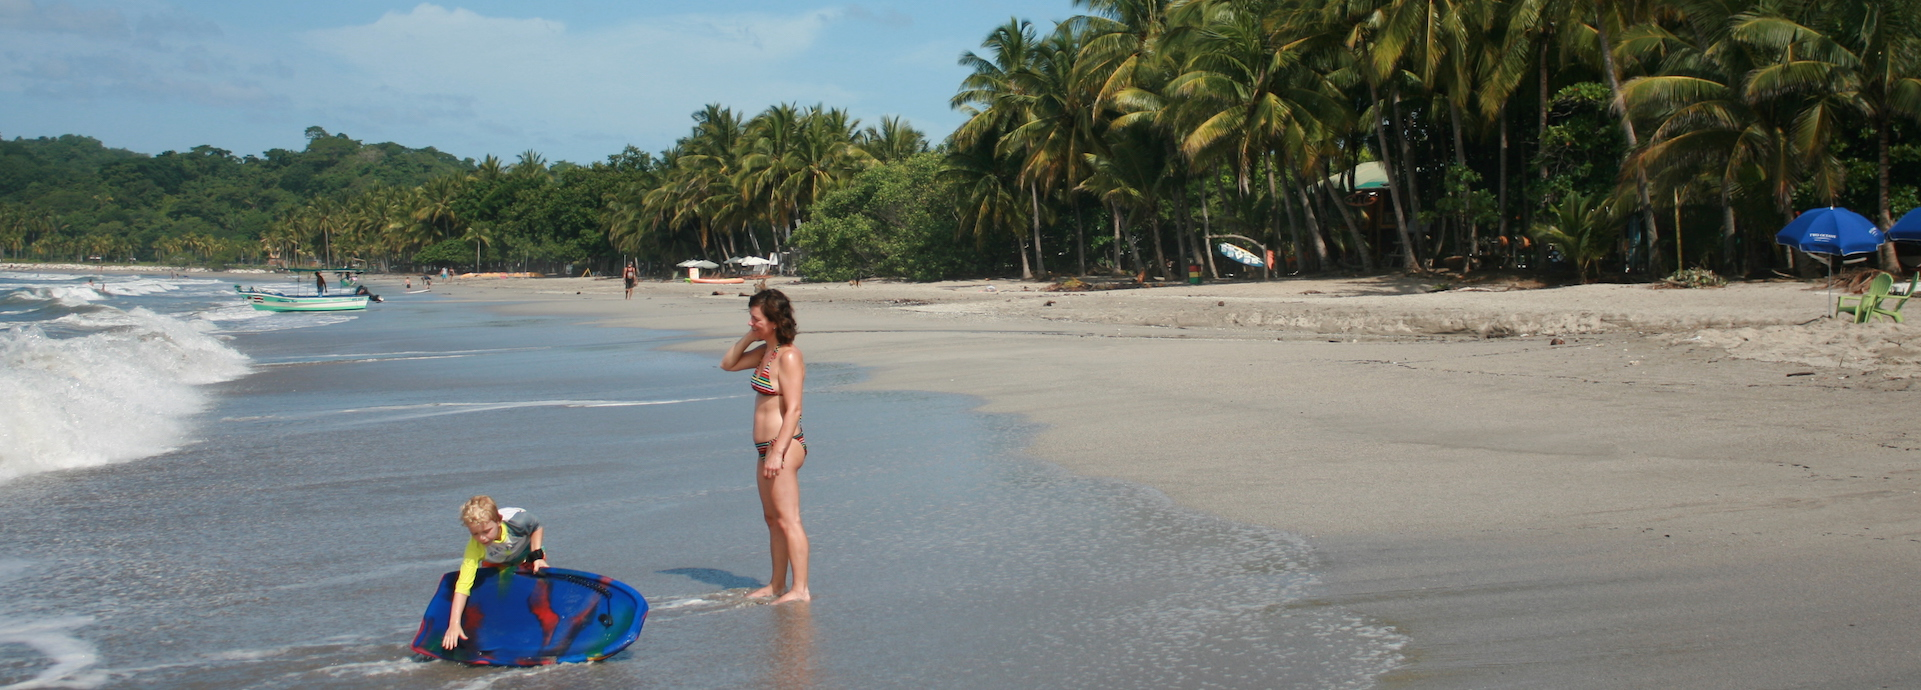 Southern Costa Rica Beaches Big Attraction For Family Vacations